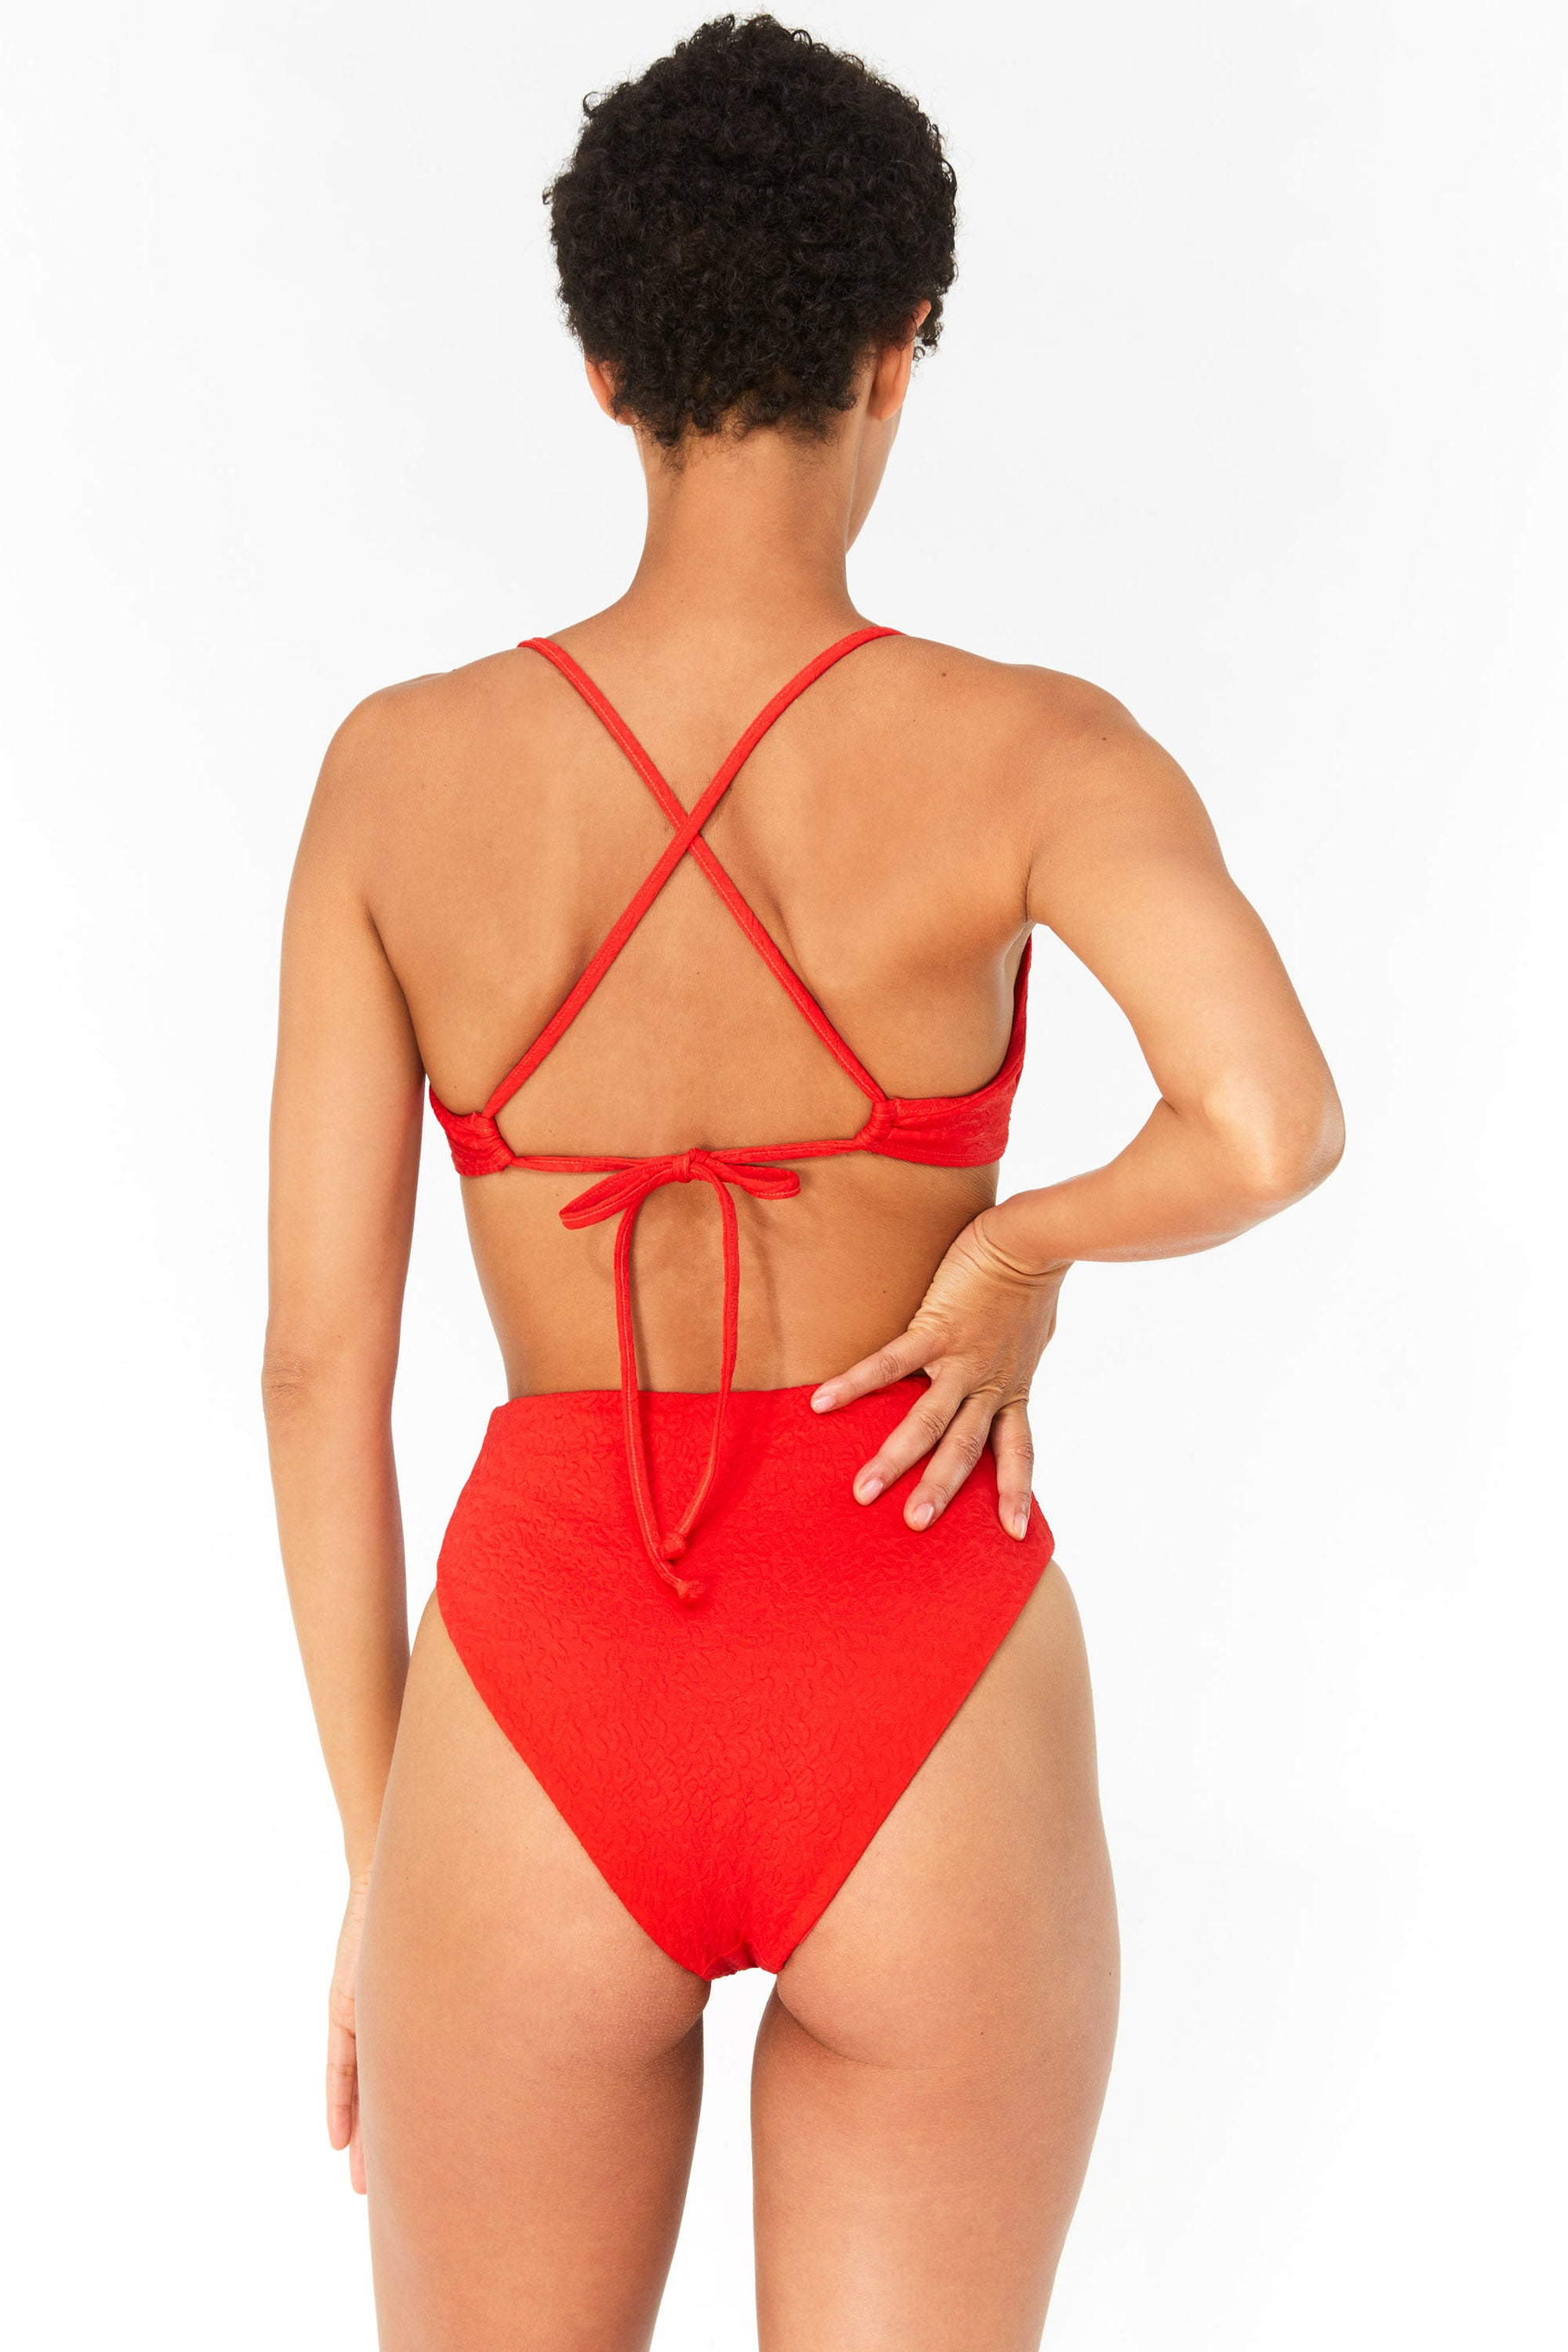 Mara Hoffman Red Mazlyn Bikini Top in Repreve (back detail)